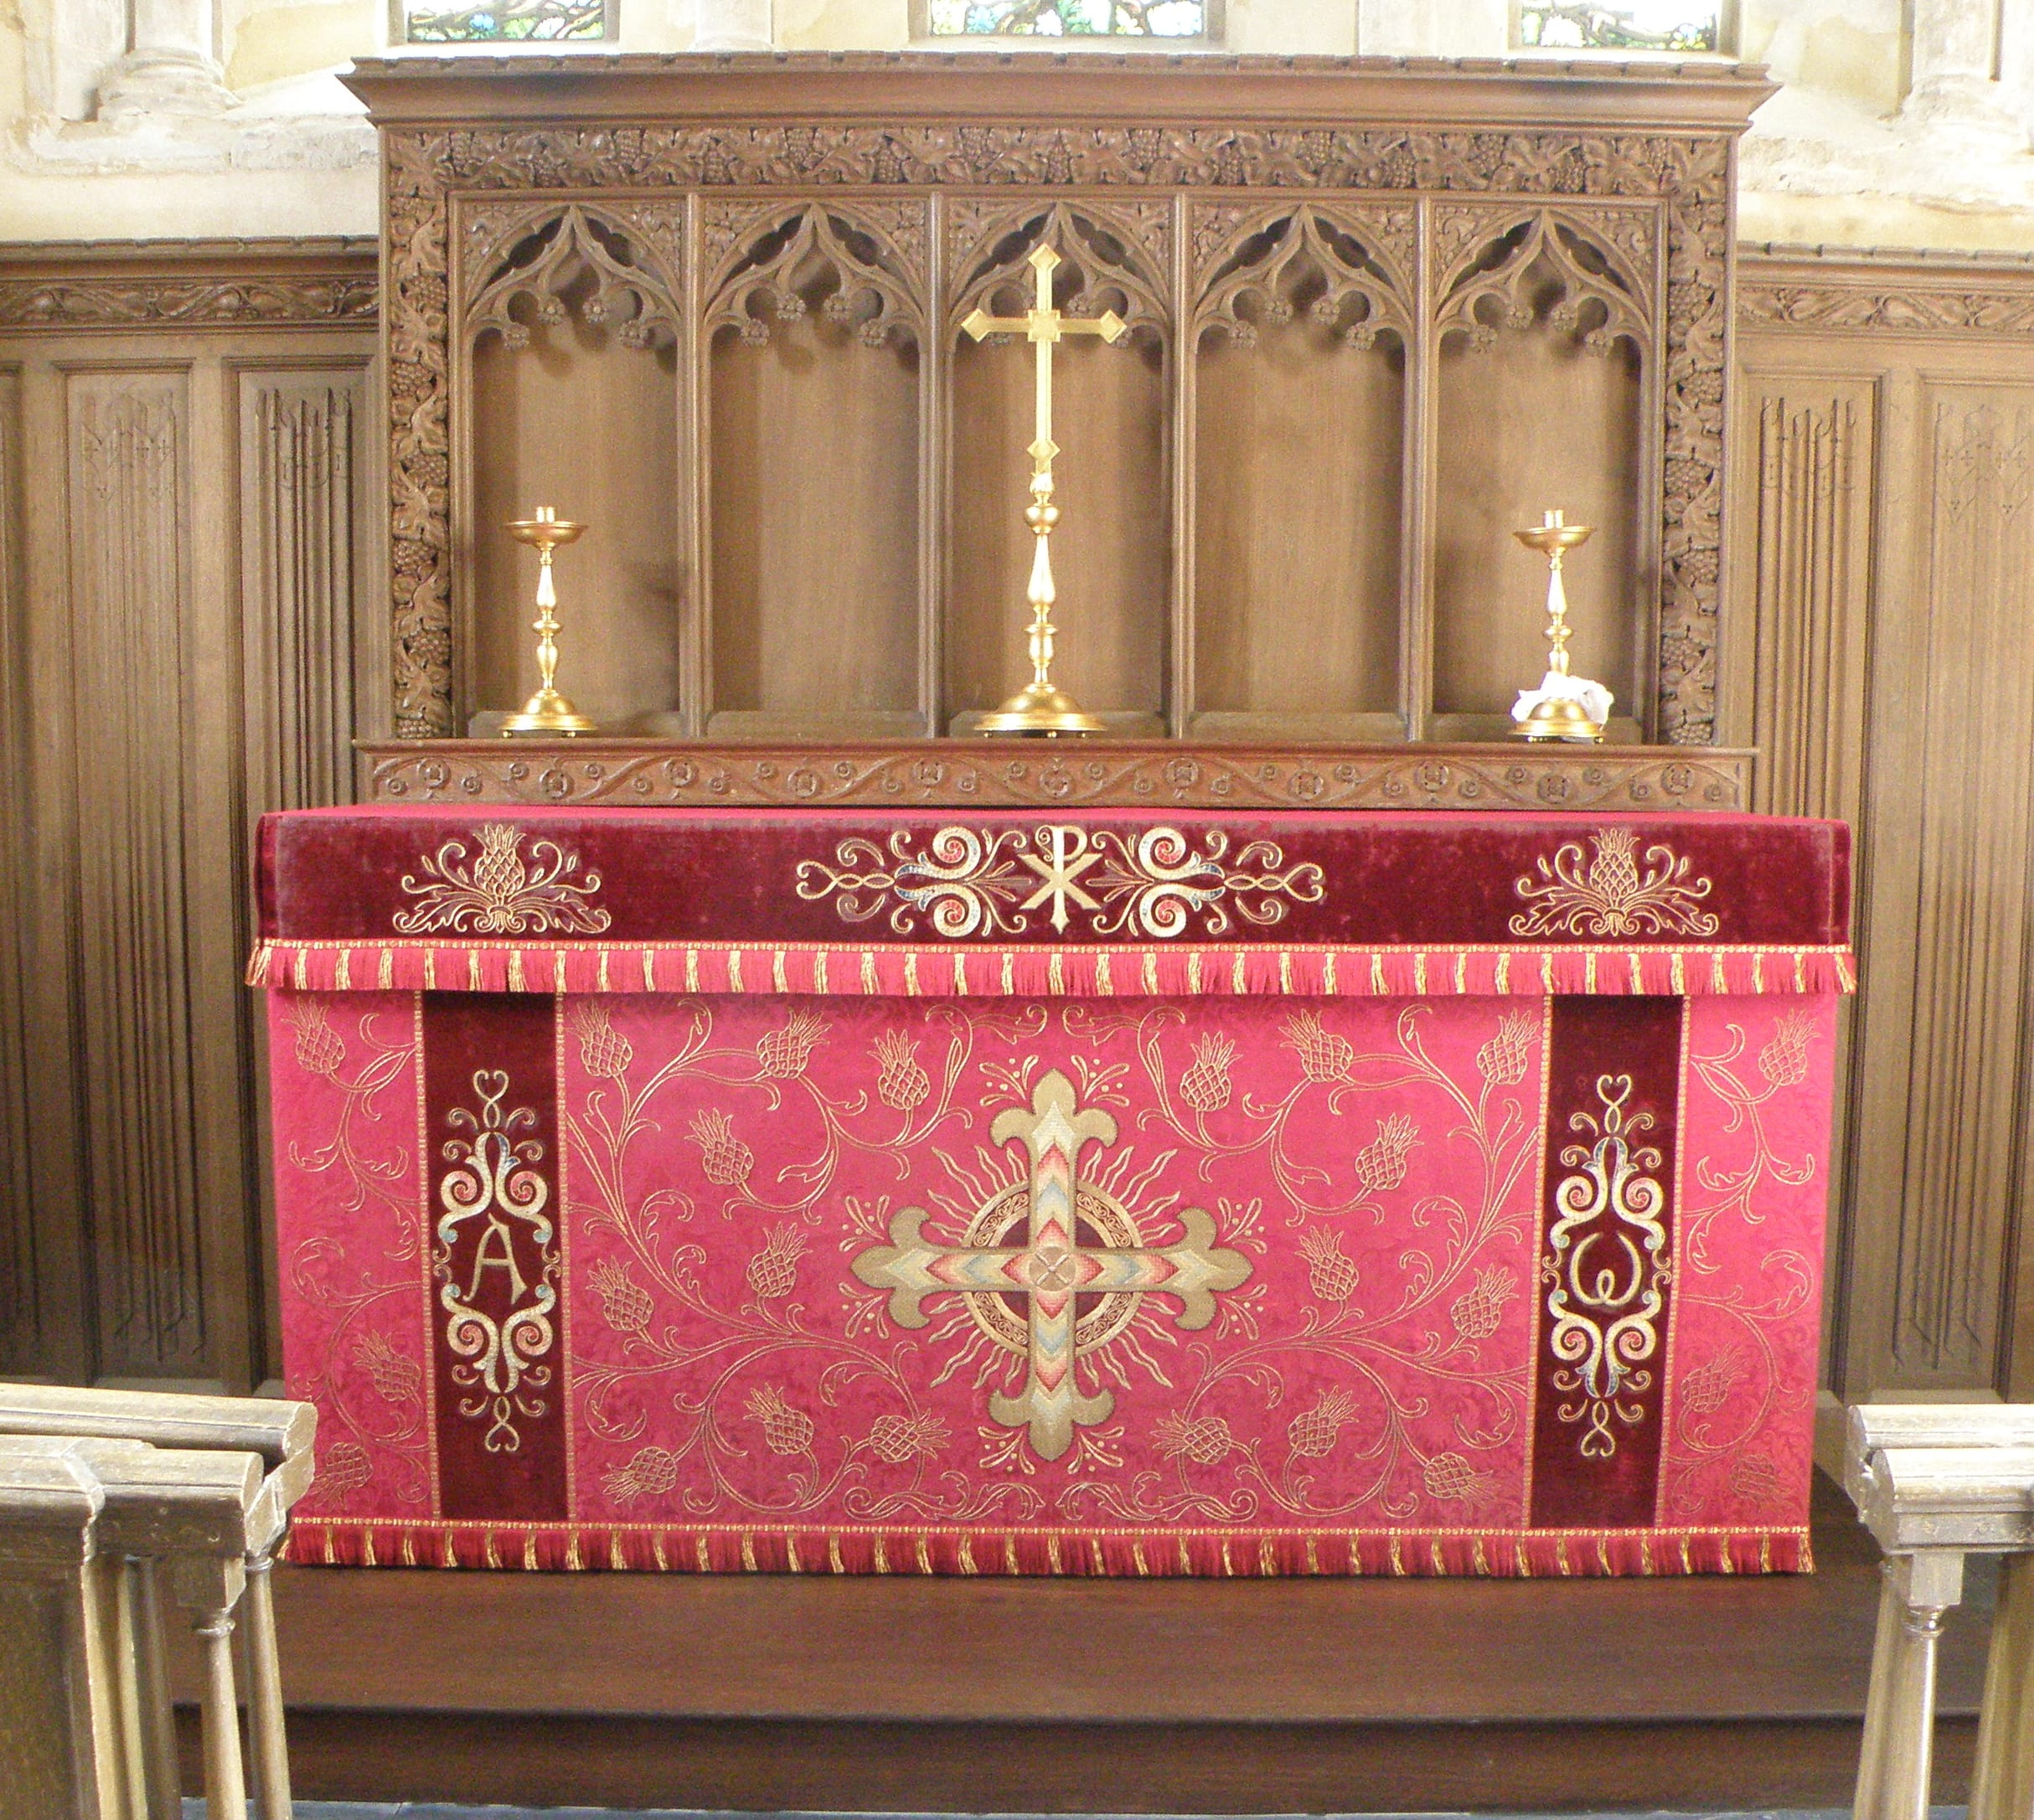 Altar Frontal, St Mary's Church, Ickworth Church Conservation Trust